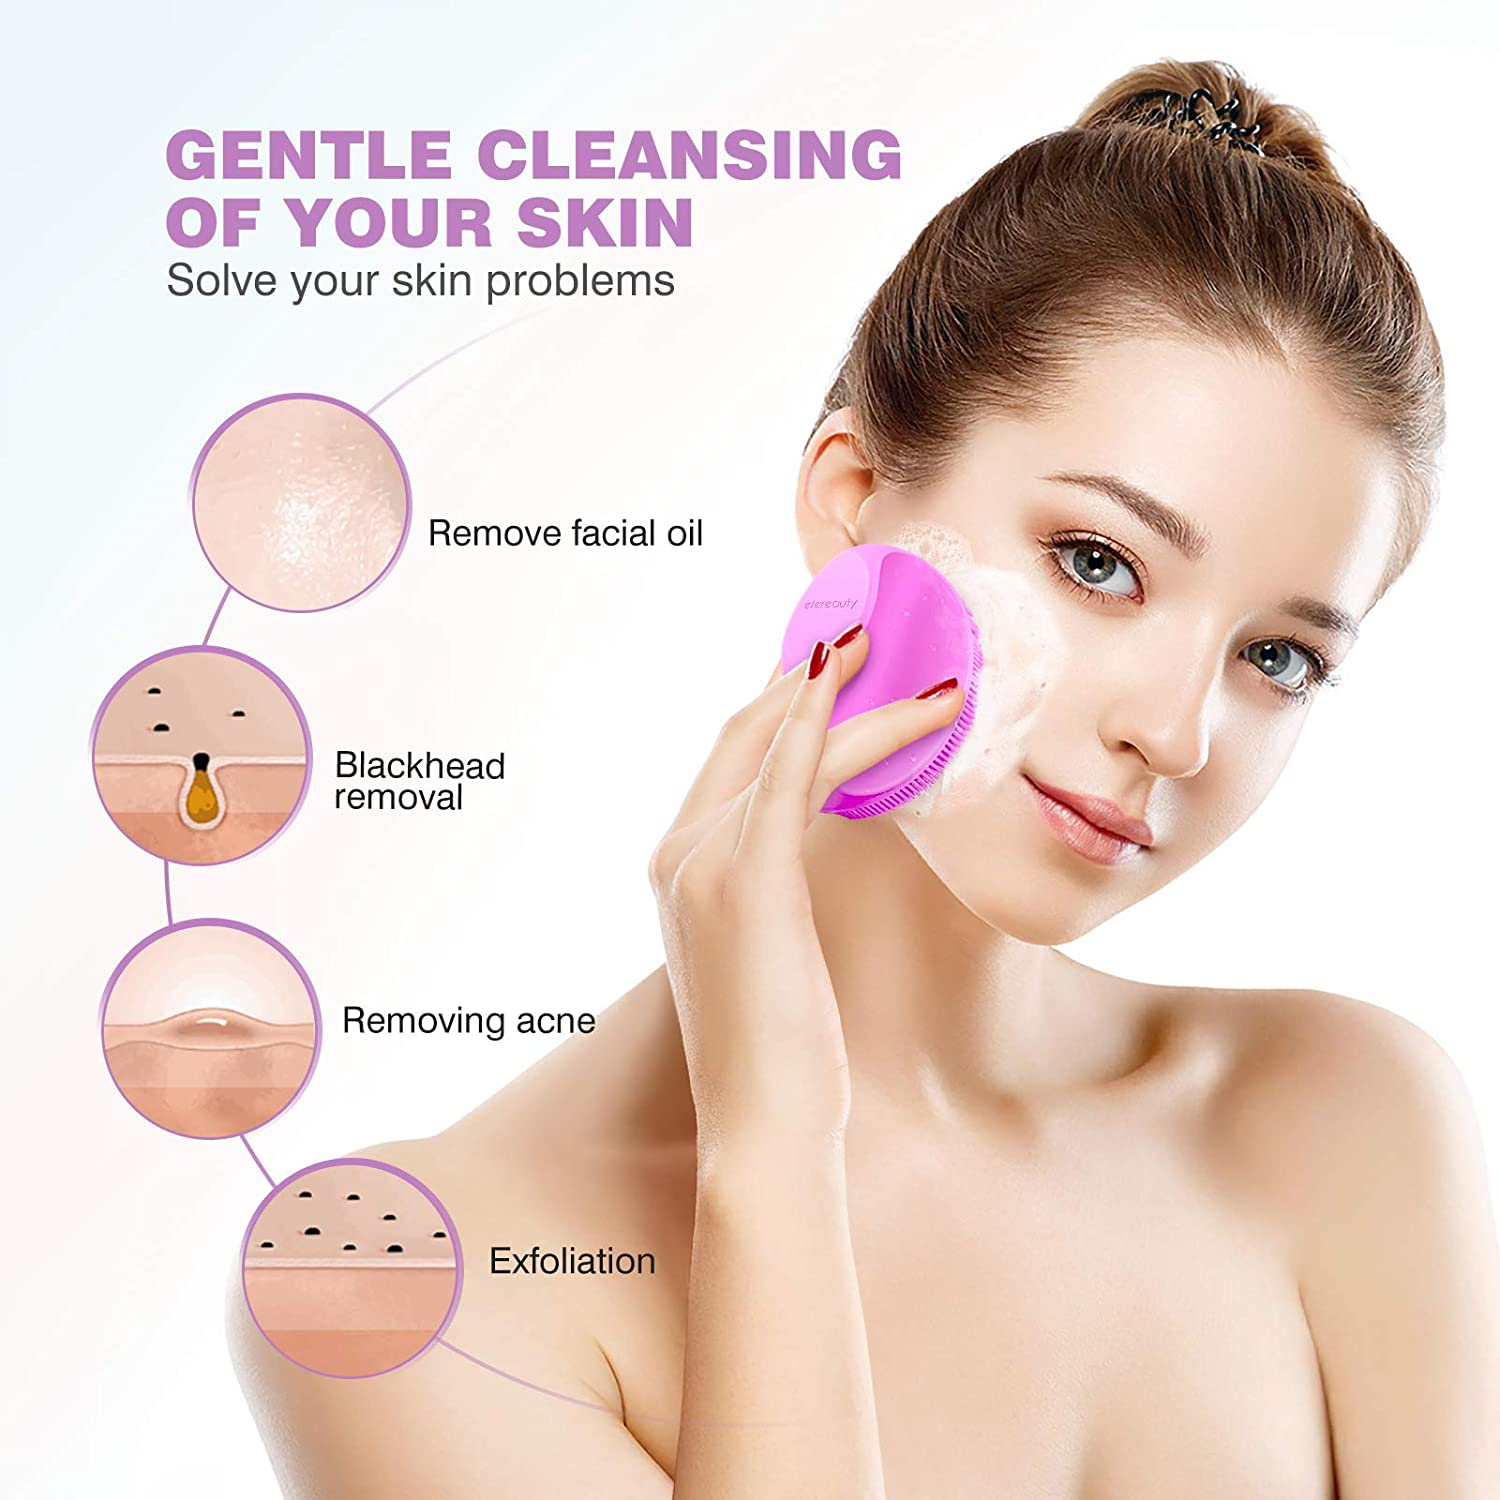 Silicone Face Scrubber Exfoliator Brush, Manual Facial Cleansing Brush Pad Soft Face Wash Brush 2 Pack (Gray and Pink)